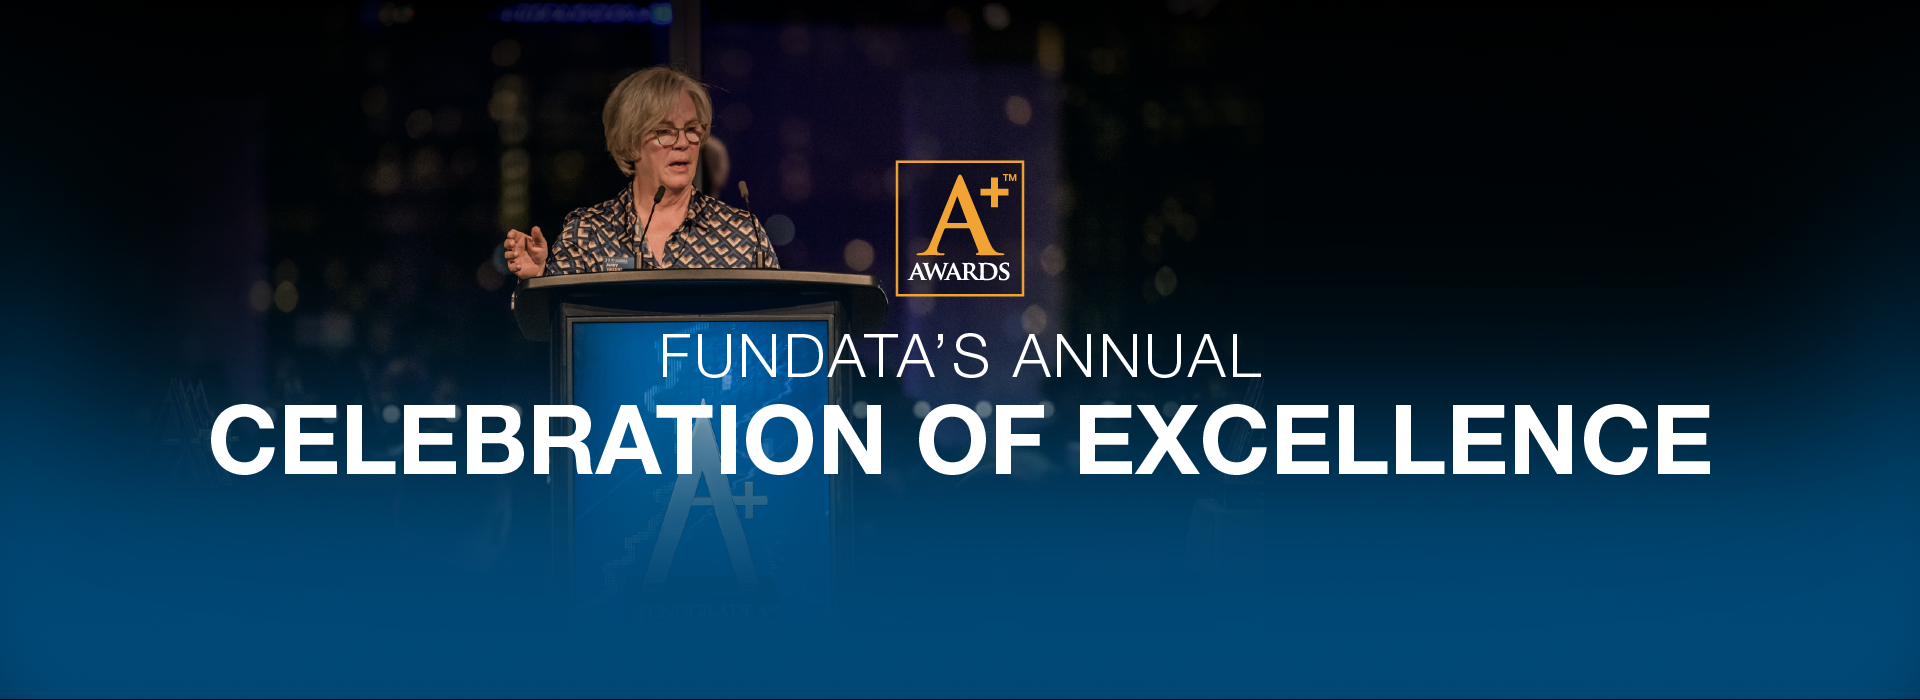 FUNDATA'S ANNUAL EVENING OF EXCELLENCE